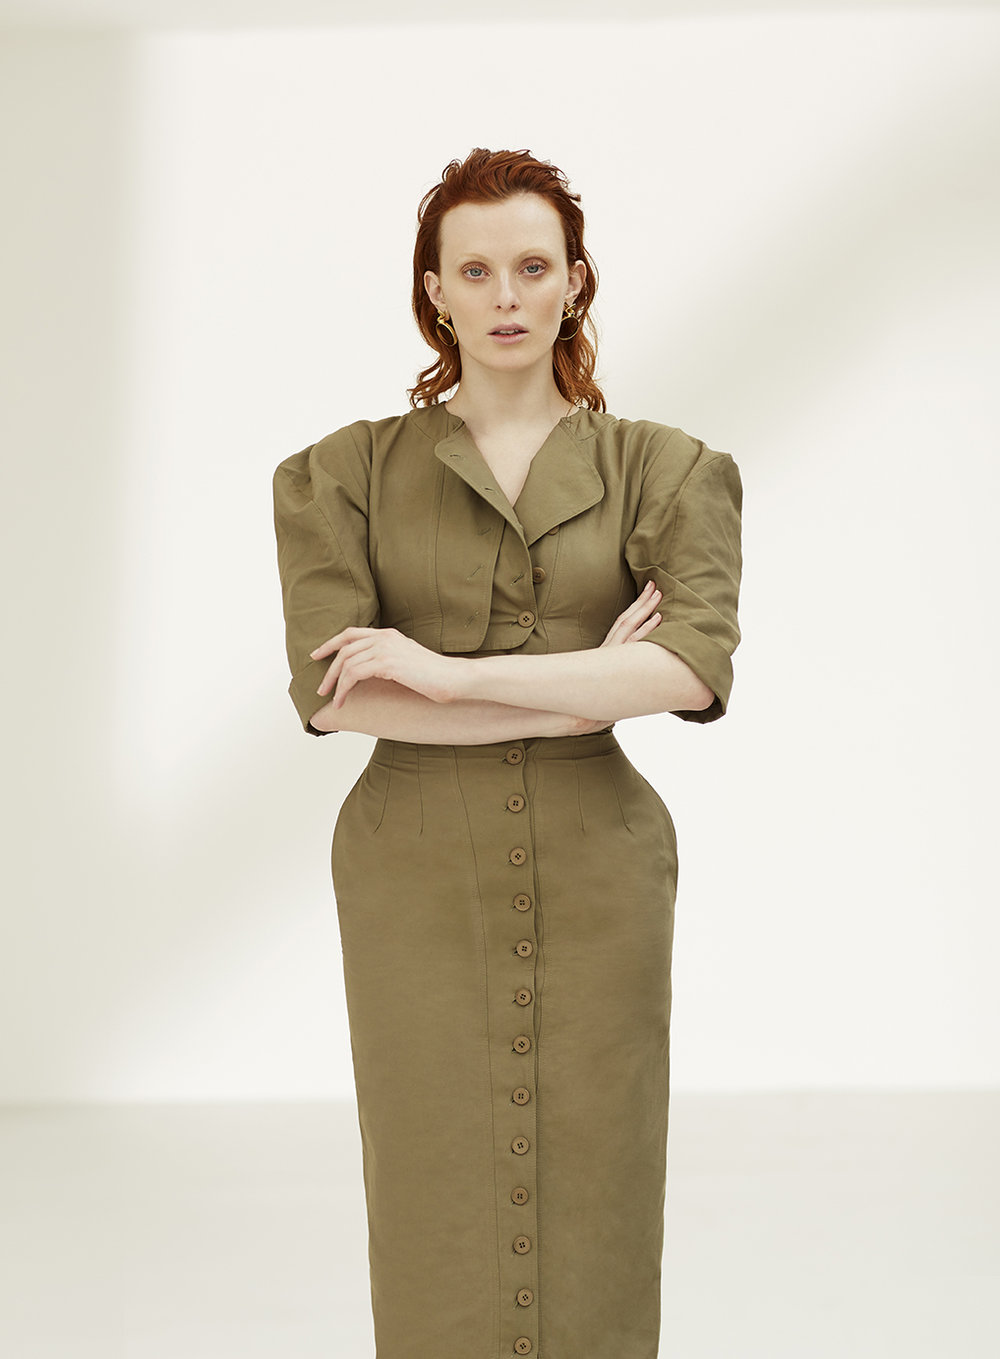 FF-Karen Elson Studio March17_01_076.jpg